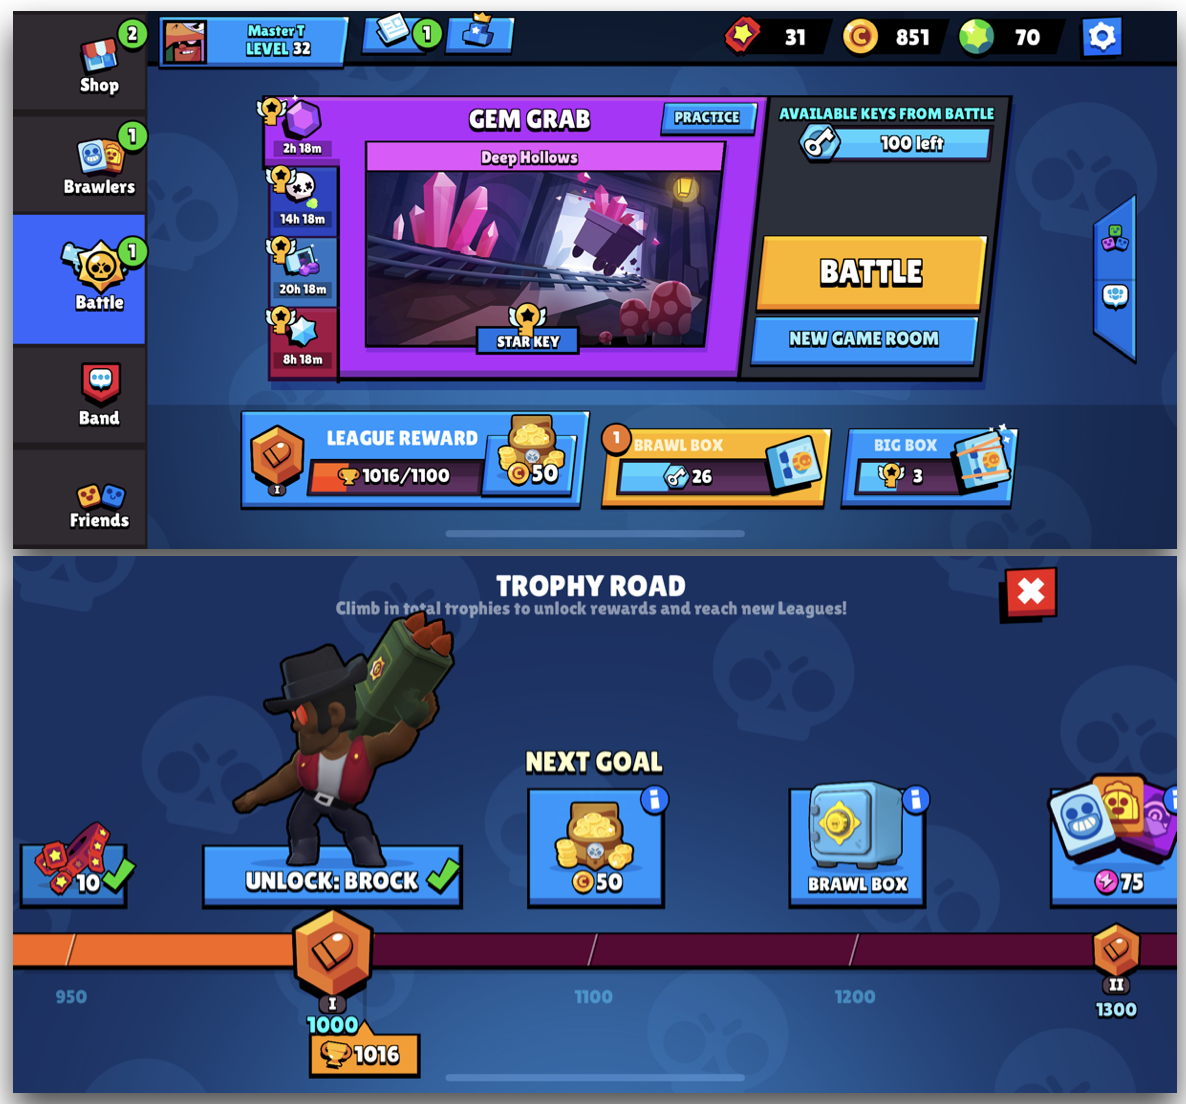 With the last update,the amazing UI and UX of Brawl Stars got even better. And the Trophy League system offered much needed reason to grind for the Trophies.